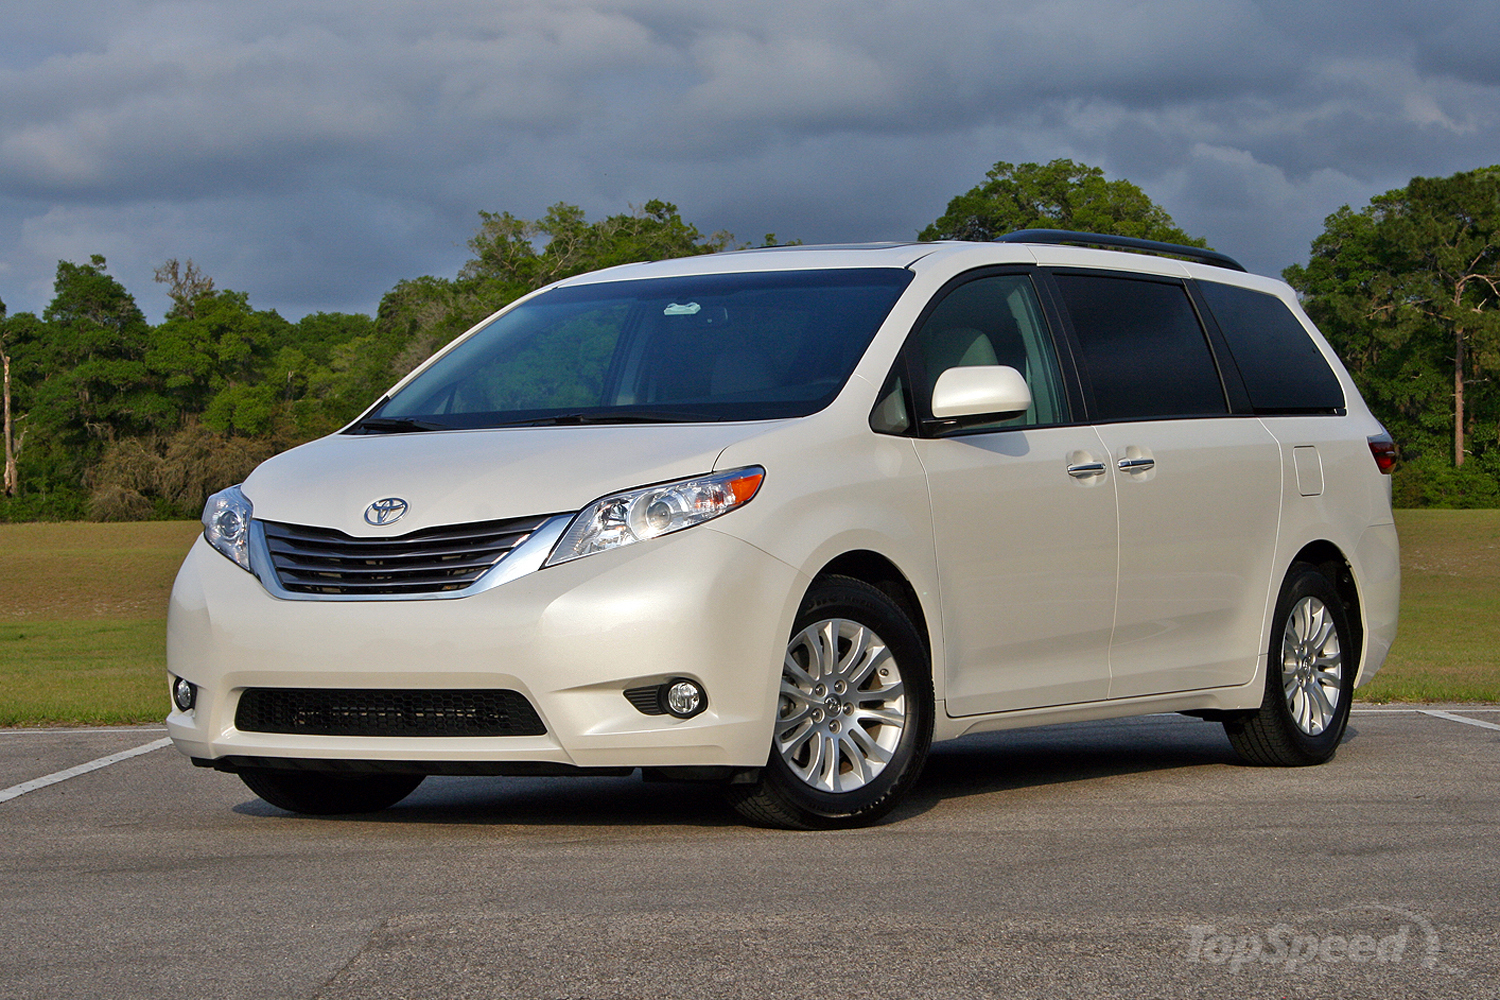 2016 toyota sienna driven picture 677116 car review top speed. Black Bedroom Furniture Sets. Home Design Ideas